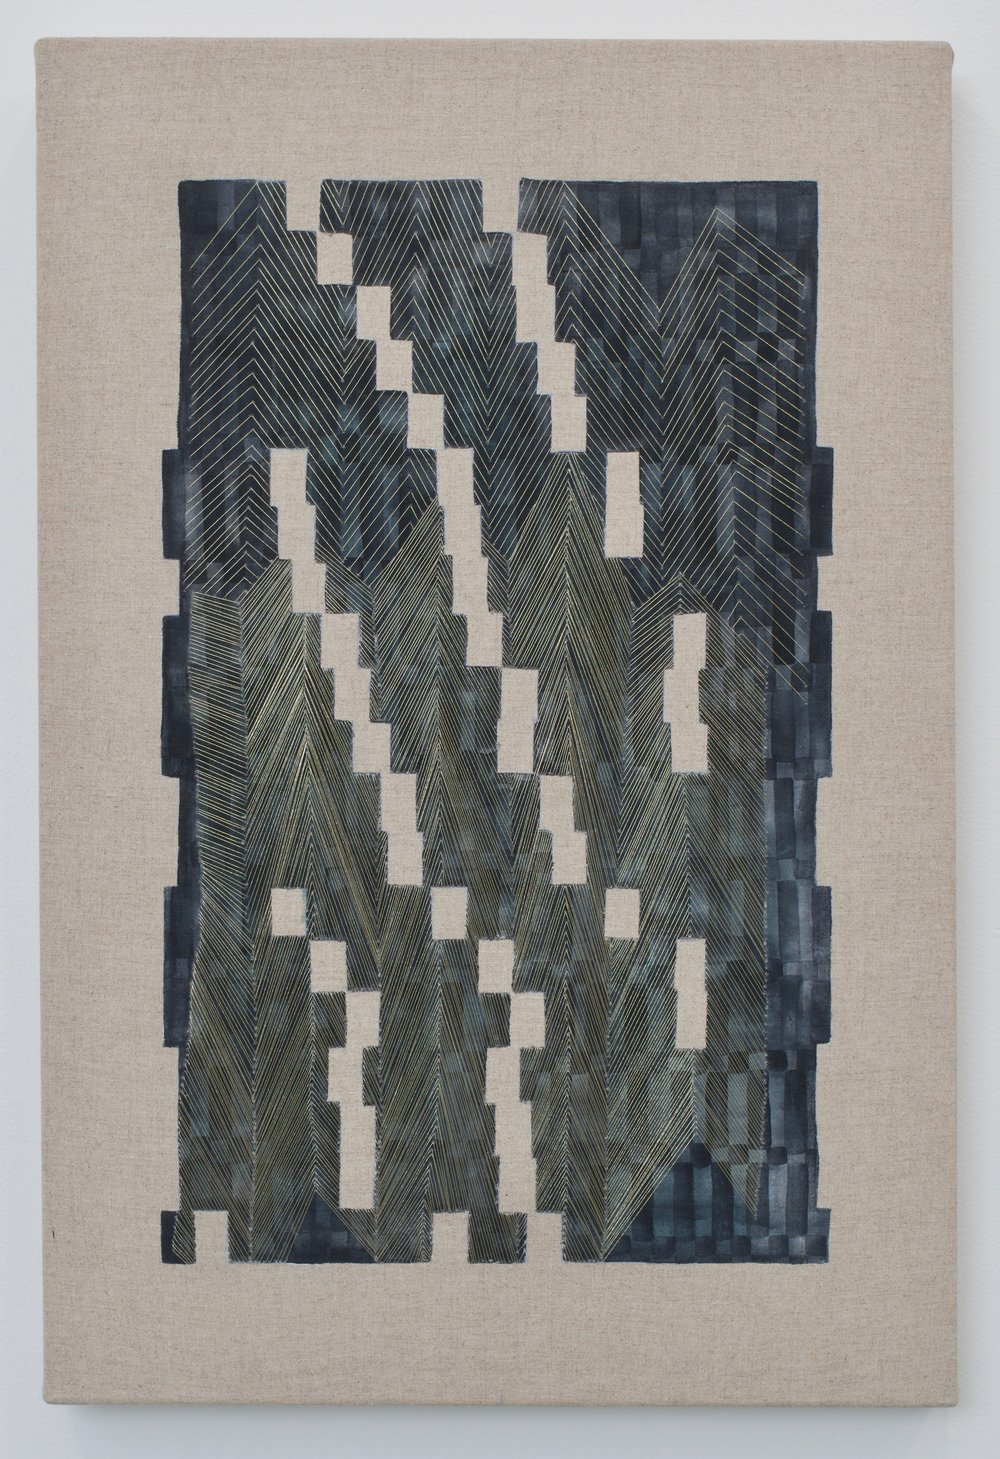 """Laura Kaufman, """"A Moment Of Confusion"""", 2018. Thread, watercolor, transfer pigment, rabbit skin glue, linen. 21x15x1.5 in."""